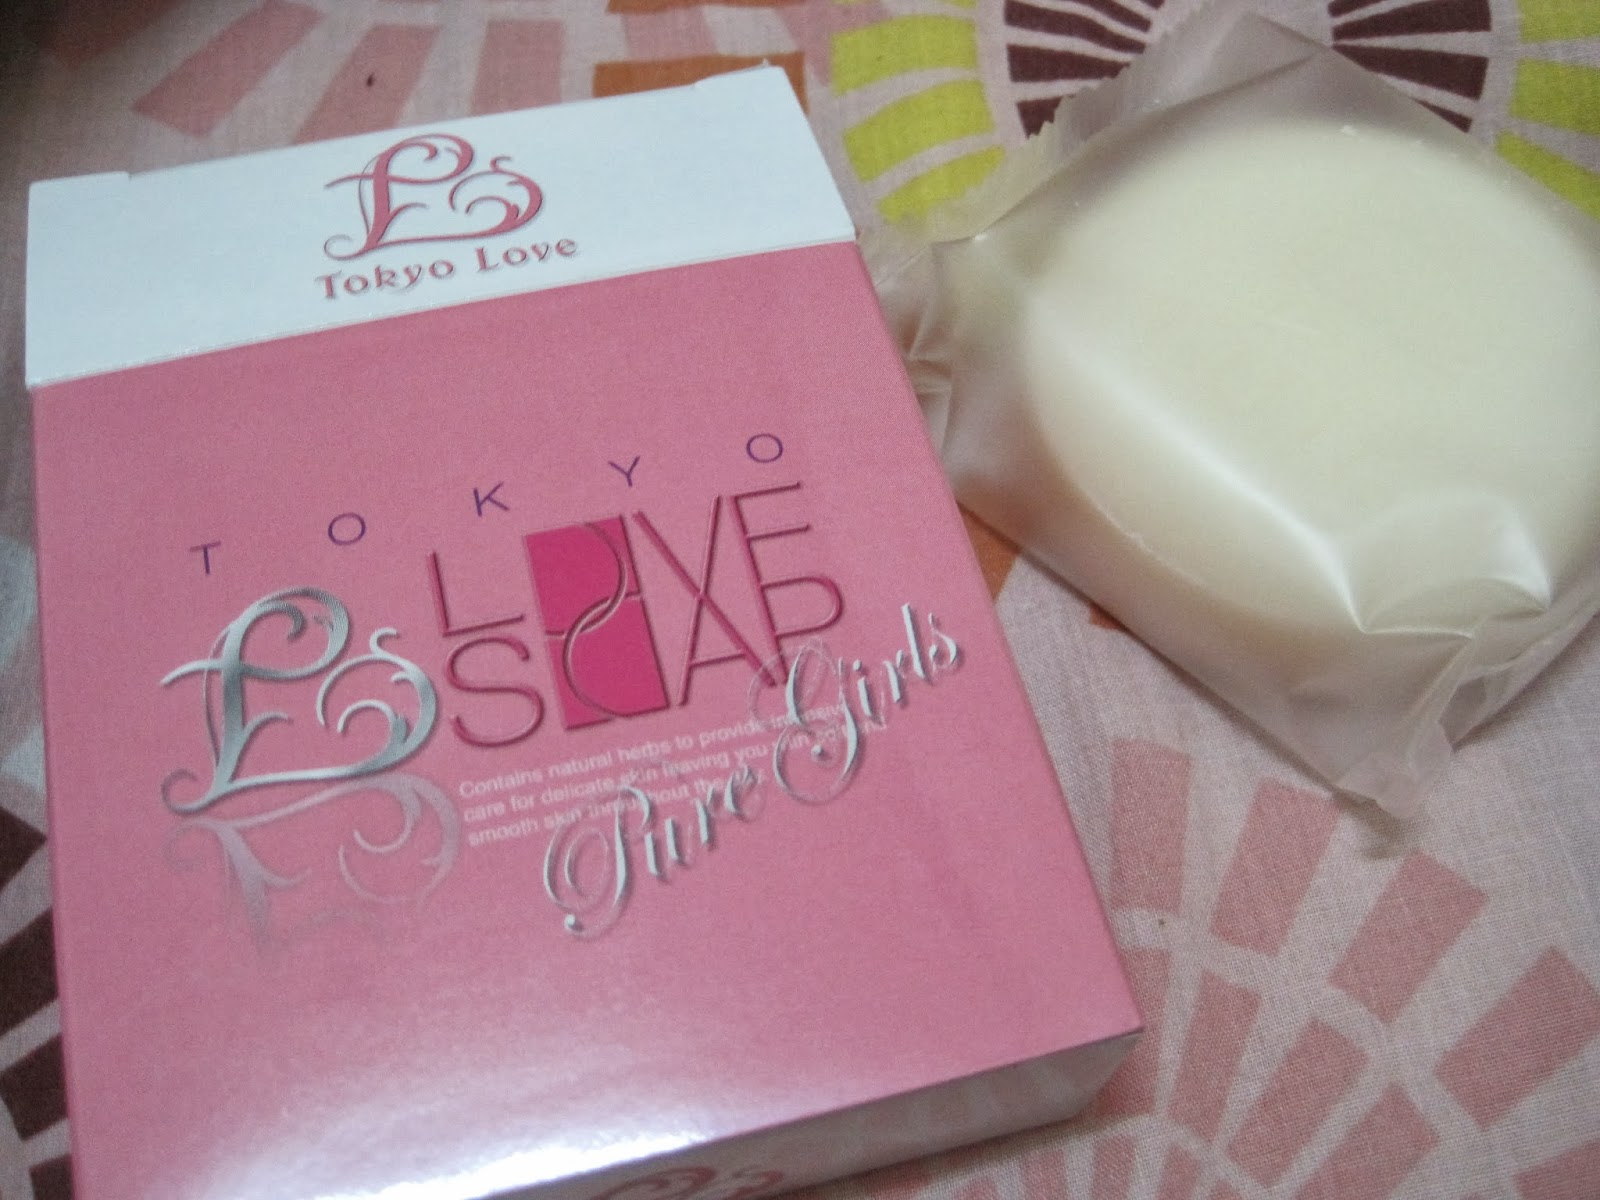 What Adventures?: Tokyo Love Soap Pure Girl Review